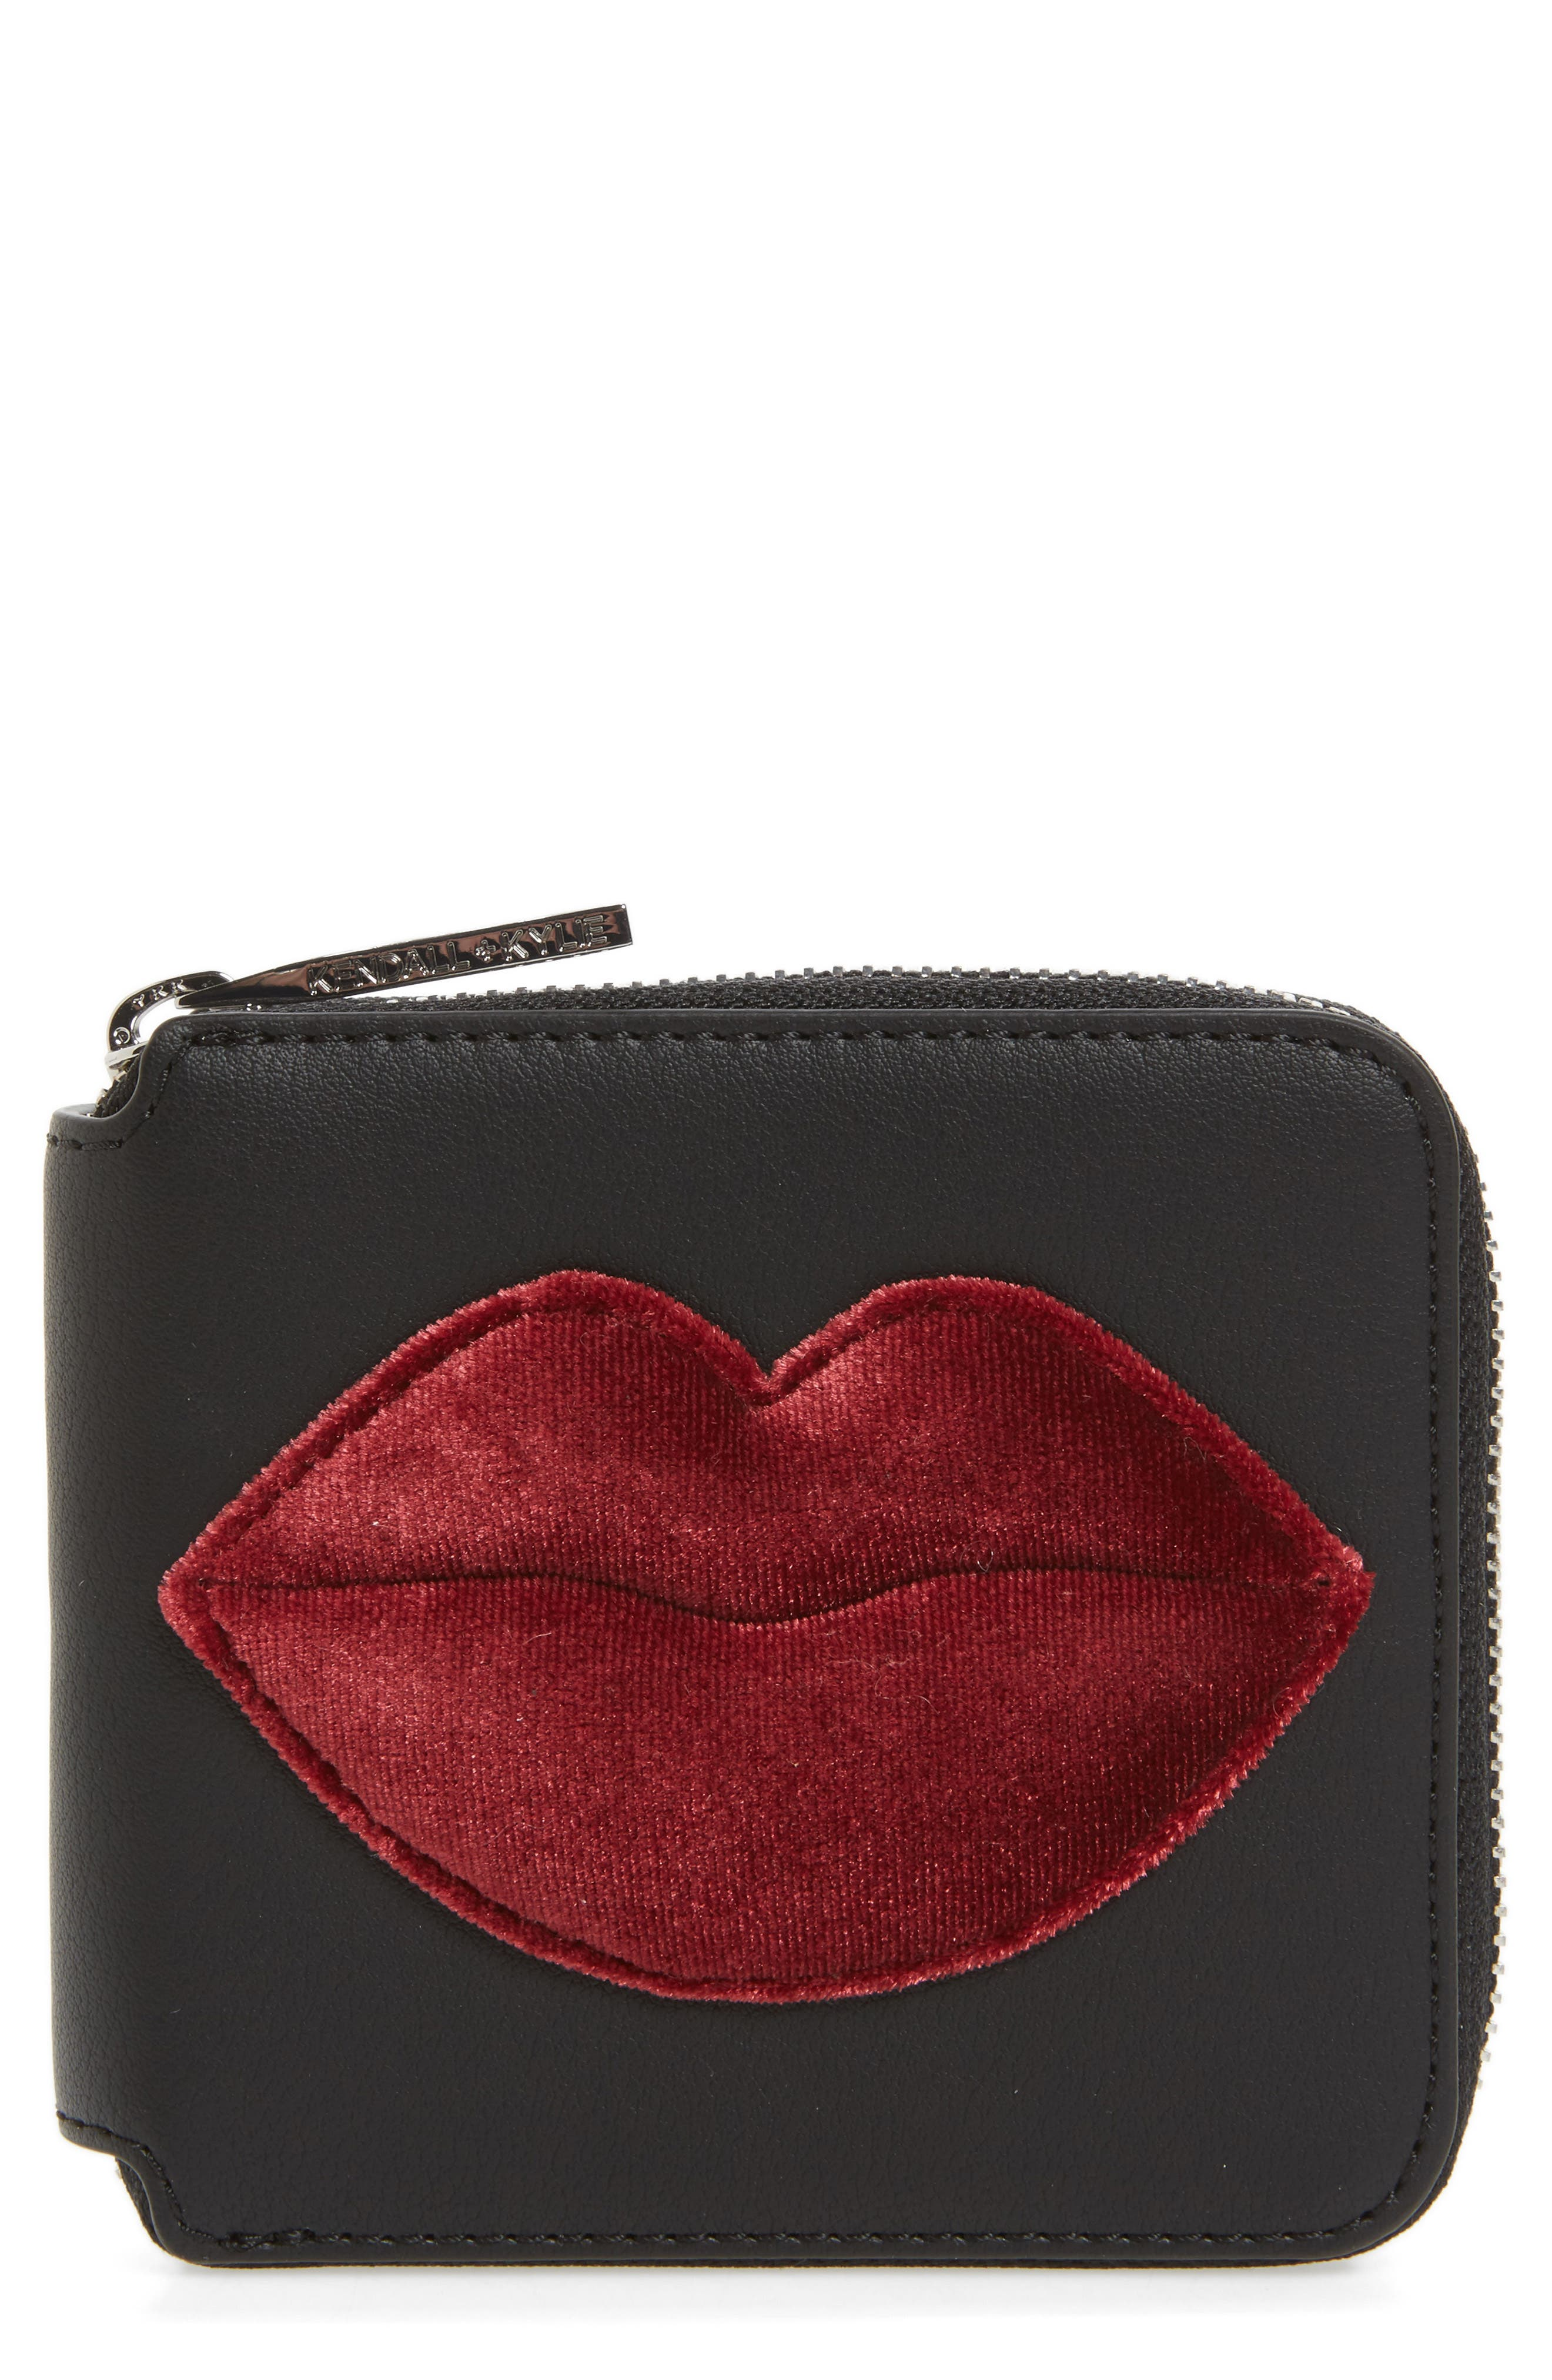 KENDALL + KYLIE Brody Lips Wallet